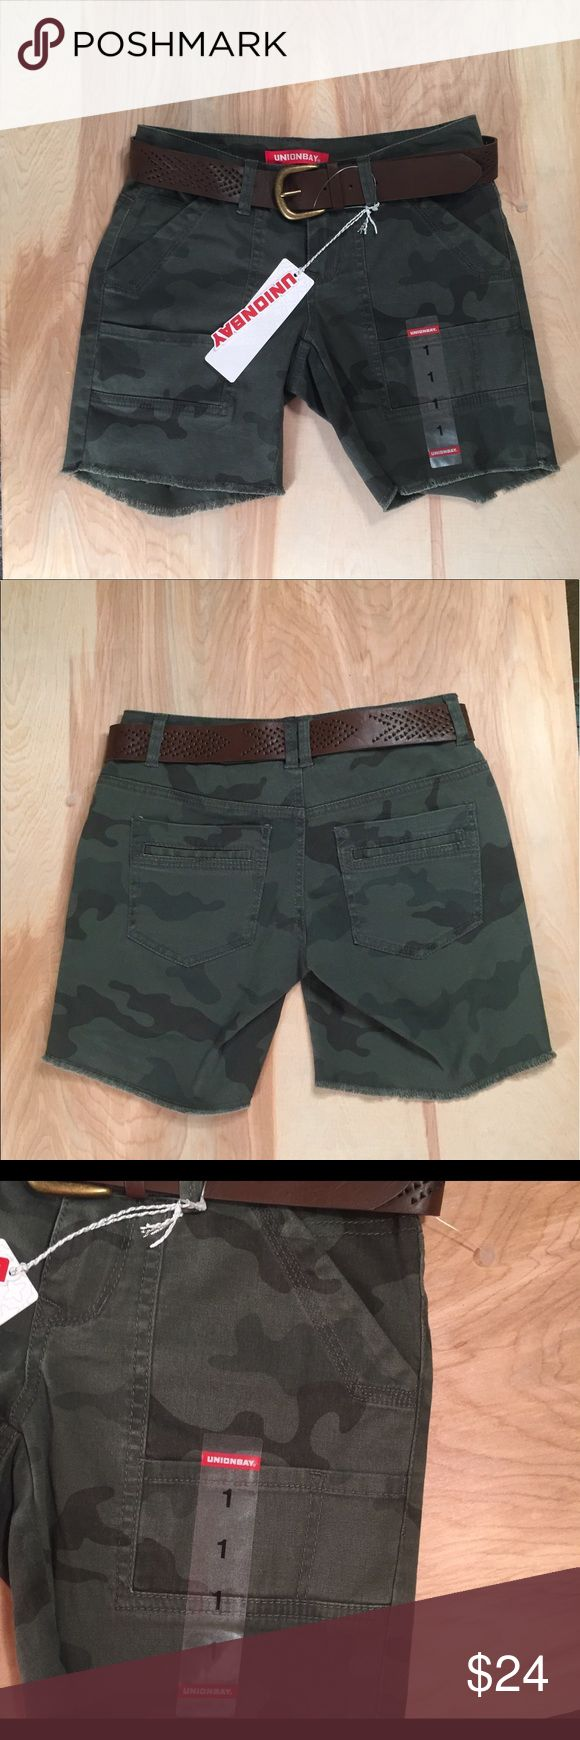 Union Bay camouflage shorts long Sz 1 Juniors NWT Union Bay Cargo style Shorts with belt. cutoff style, long about to knee. Size 1 Juniors UNIONBAY Shorts Cargos